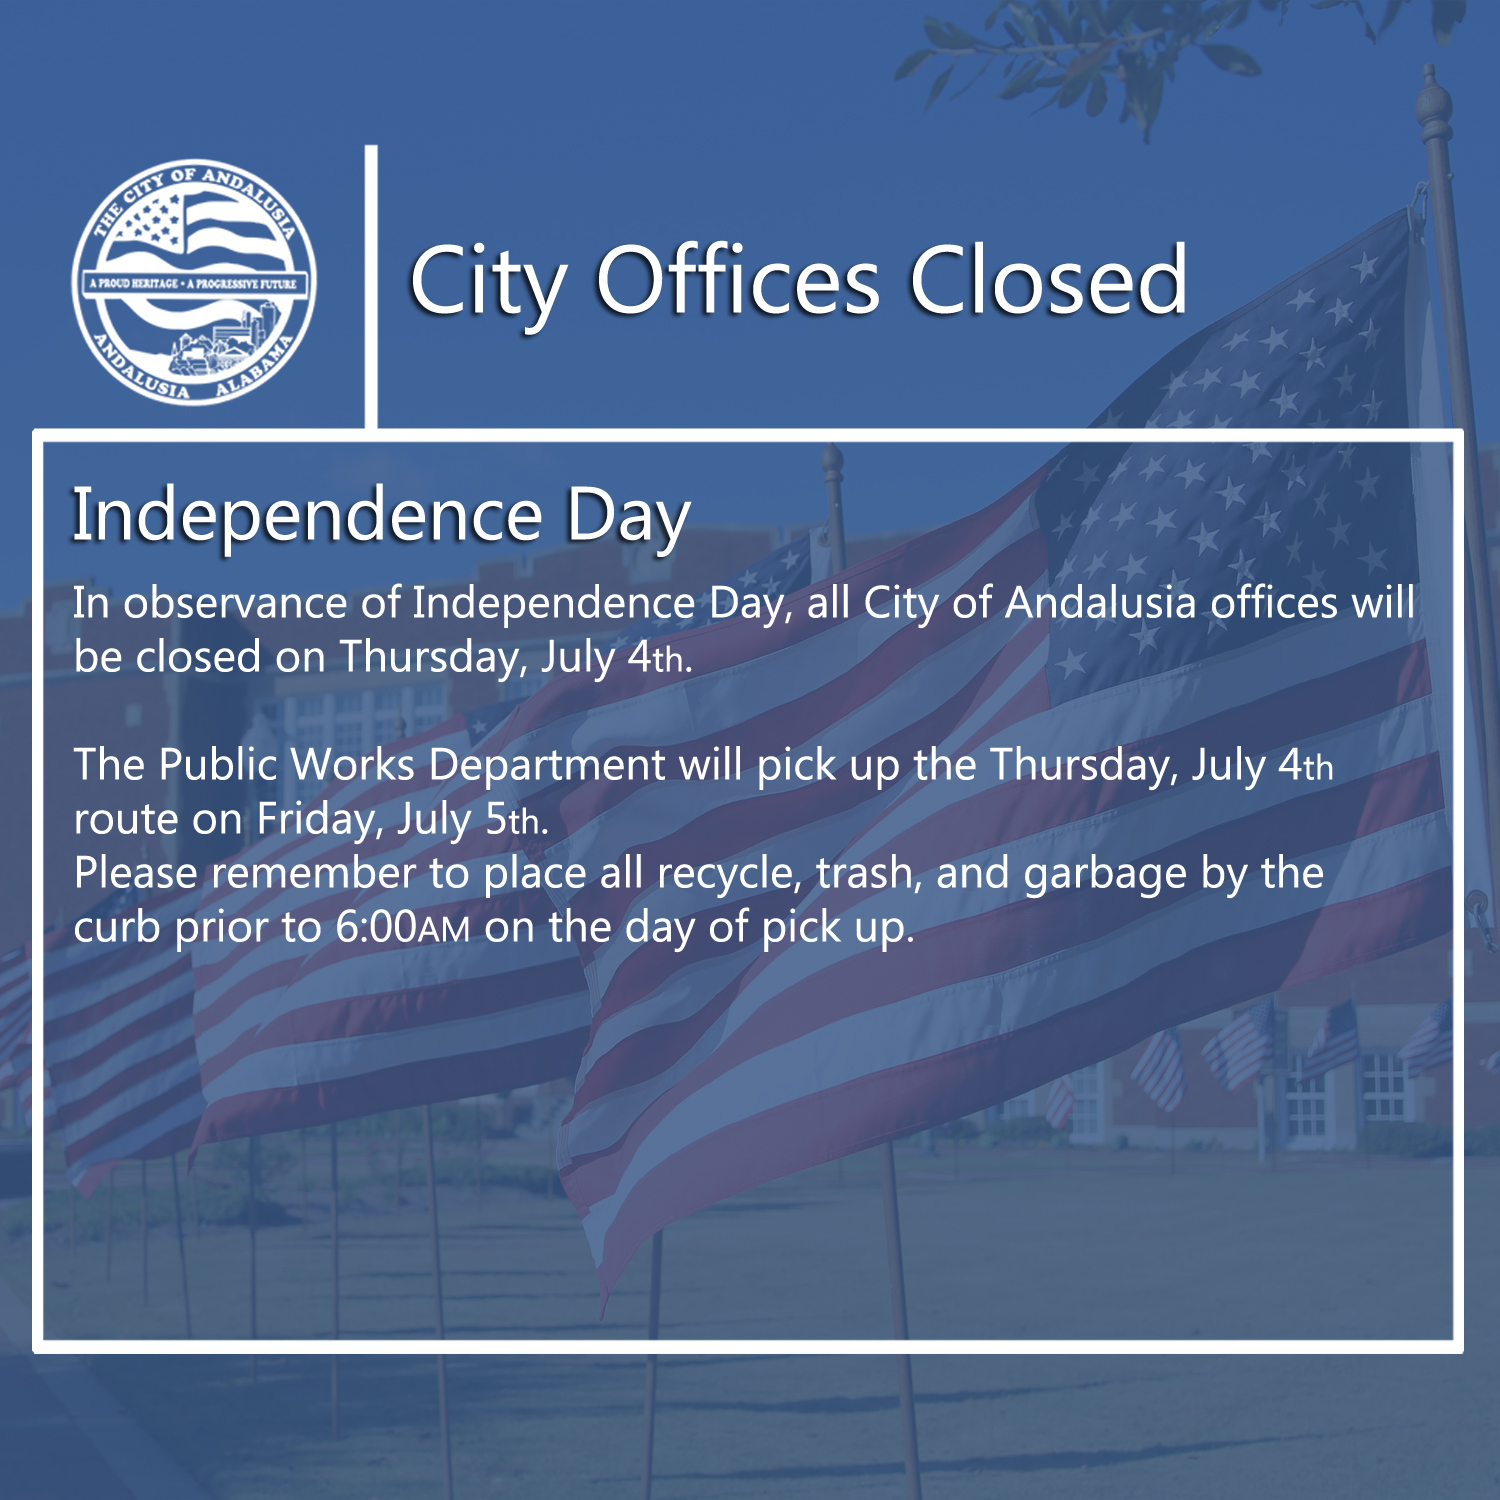 Facebook City Offices Closed Independence